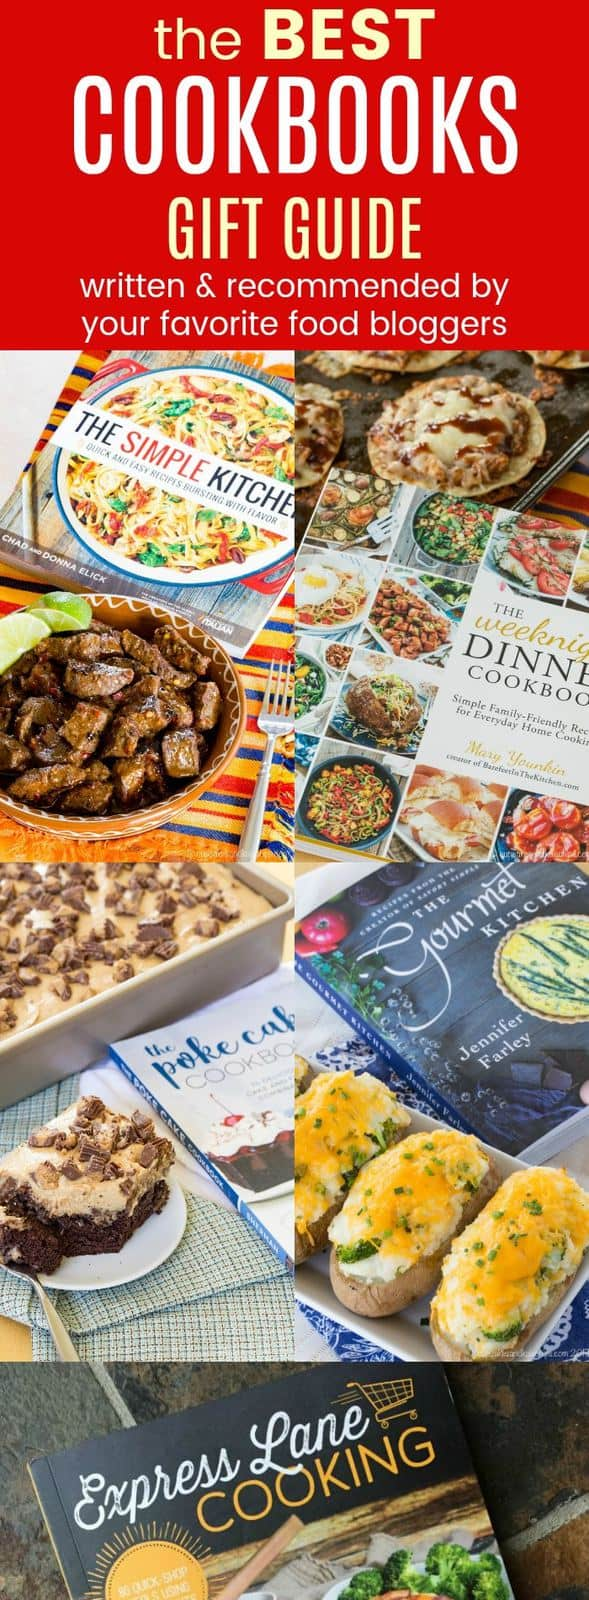 The Best Cookbooks Gift Guide - over 50 cookbooks for foodies that make the best gifts. Written by and recommended by the best food bloggers on the web!